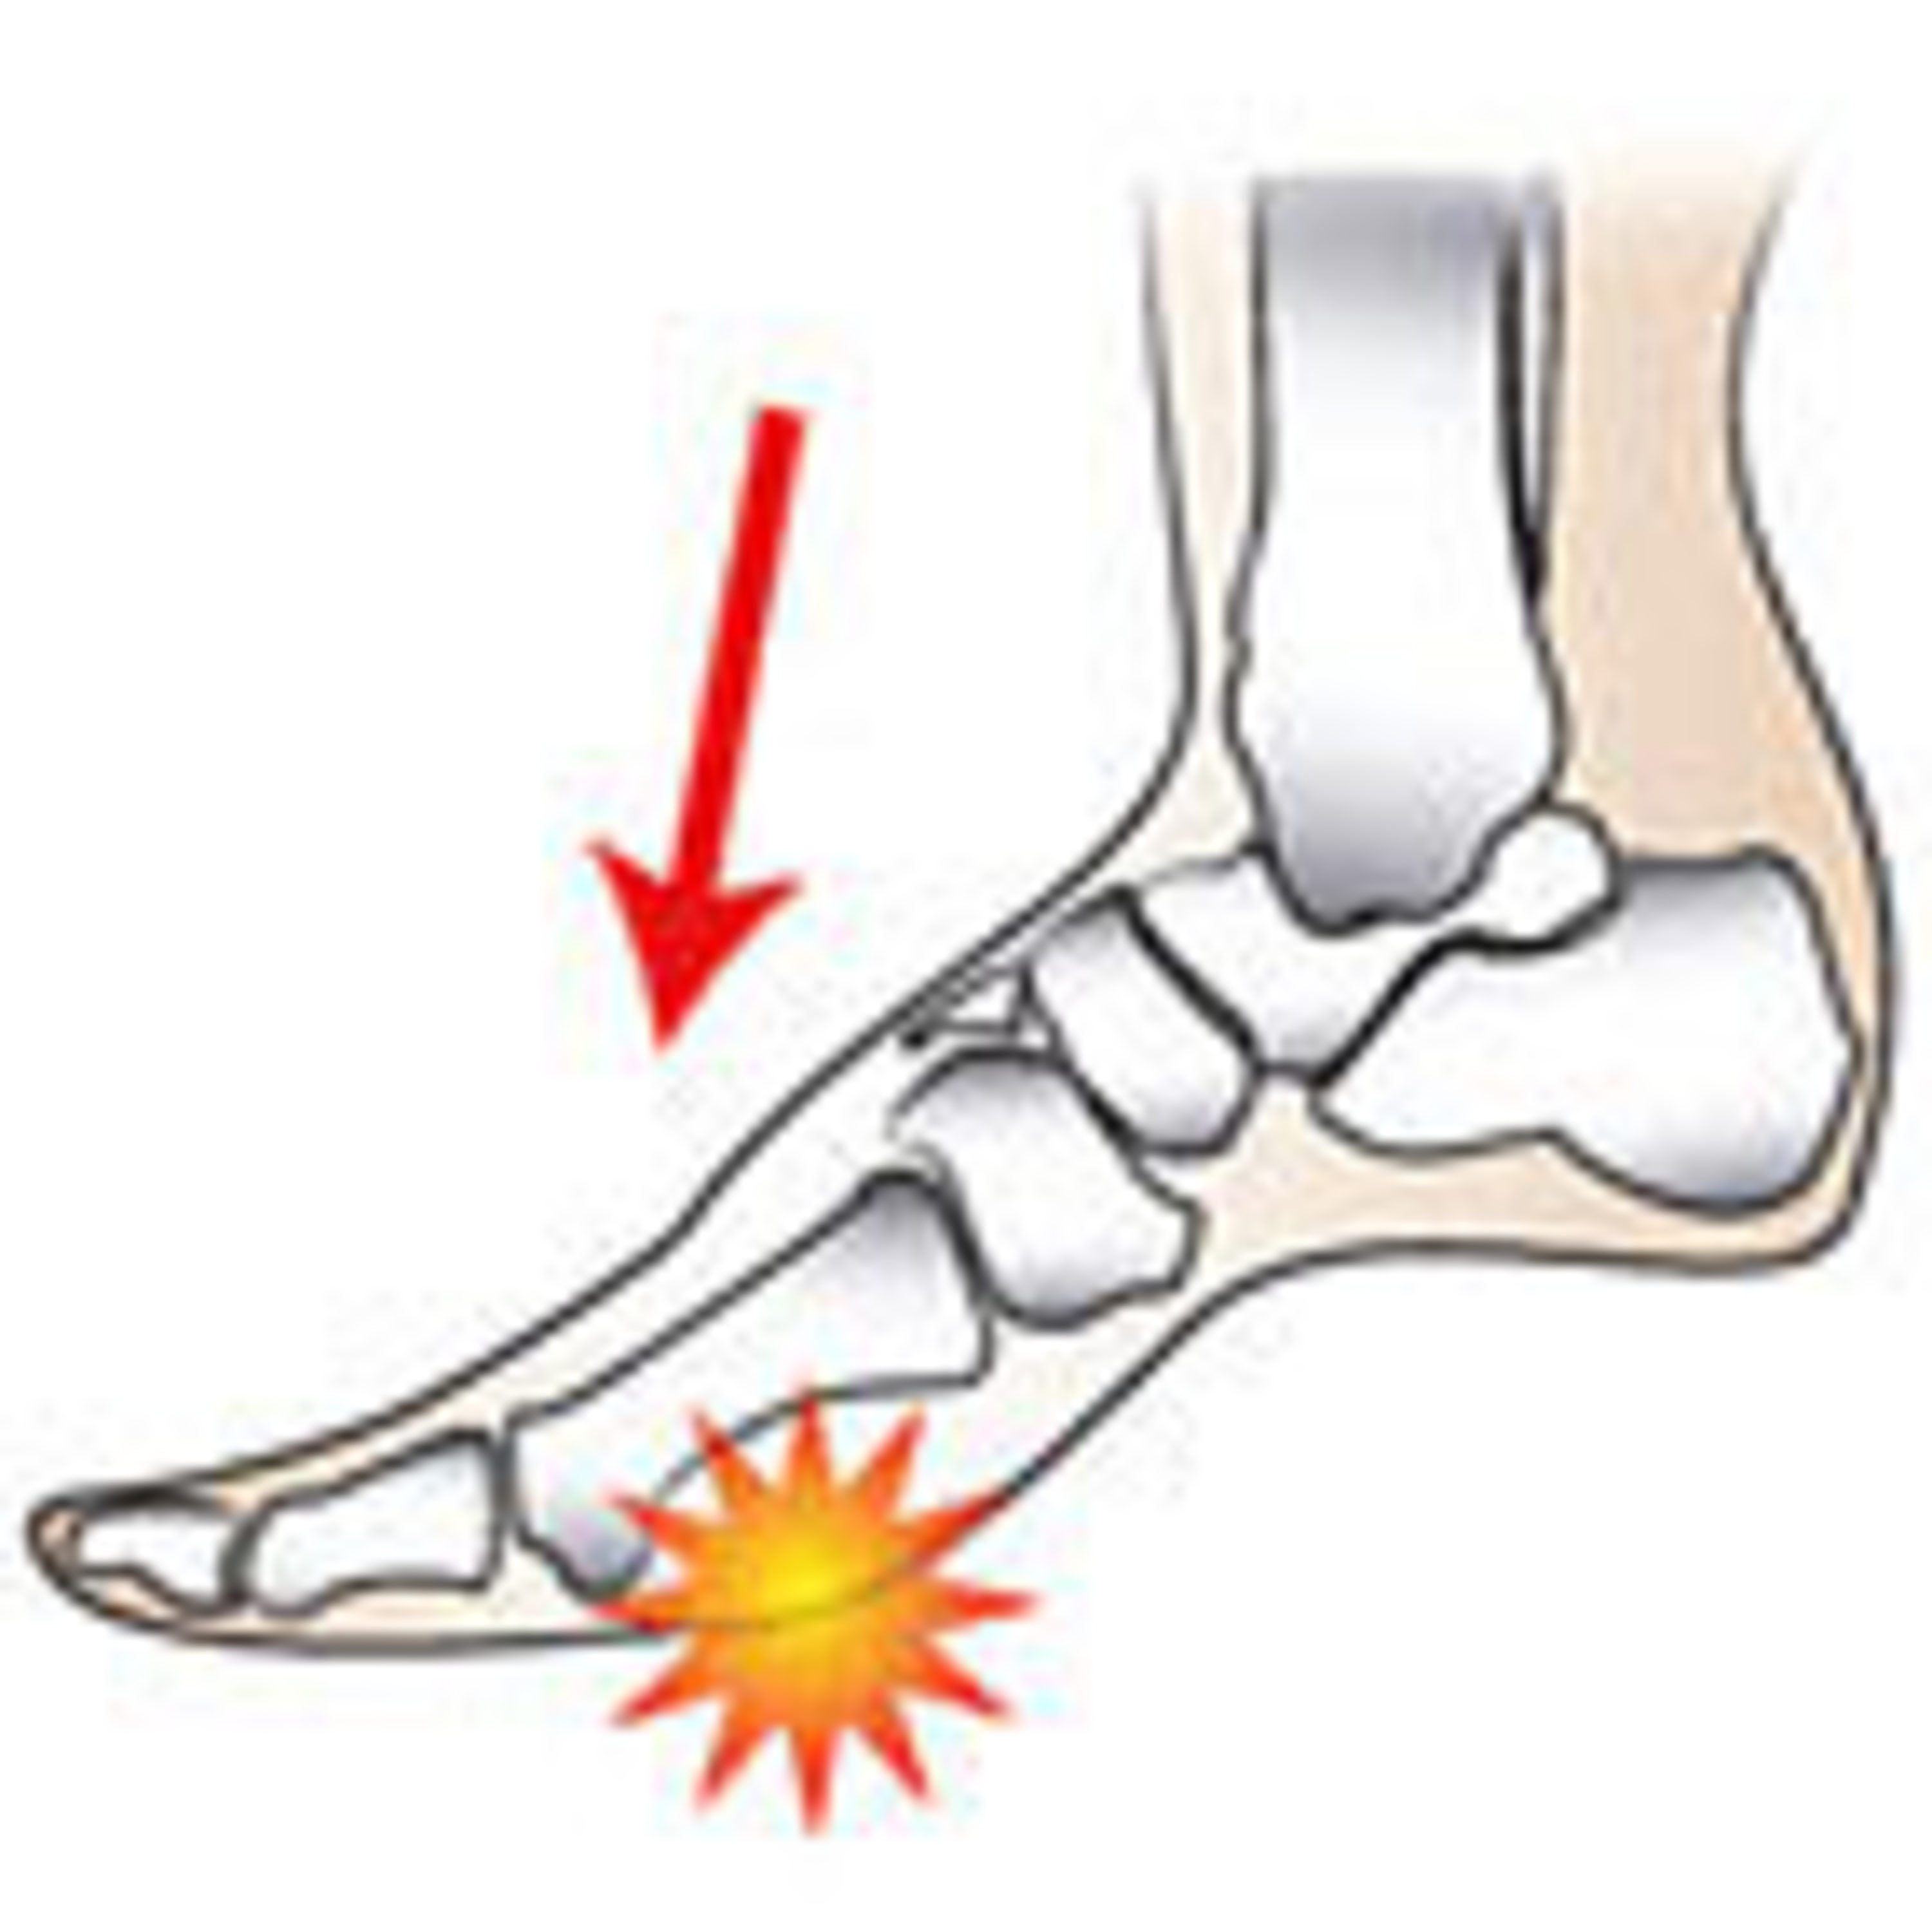 Episode 92: Ep92 - Forefoot pain